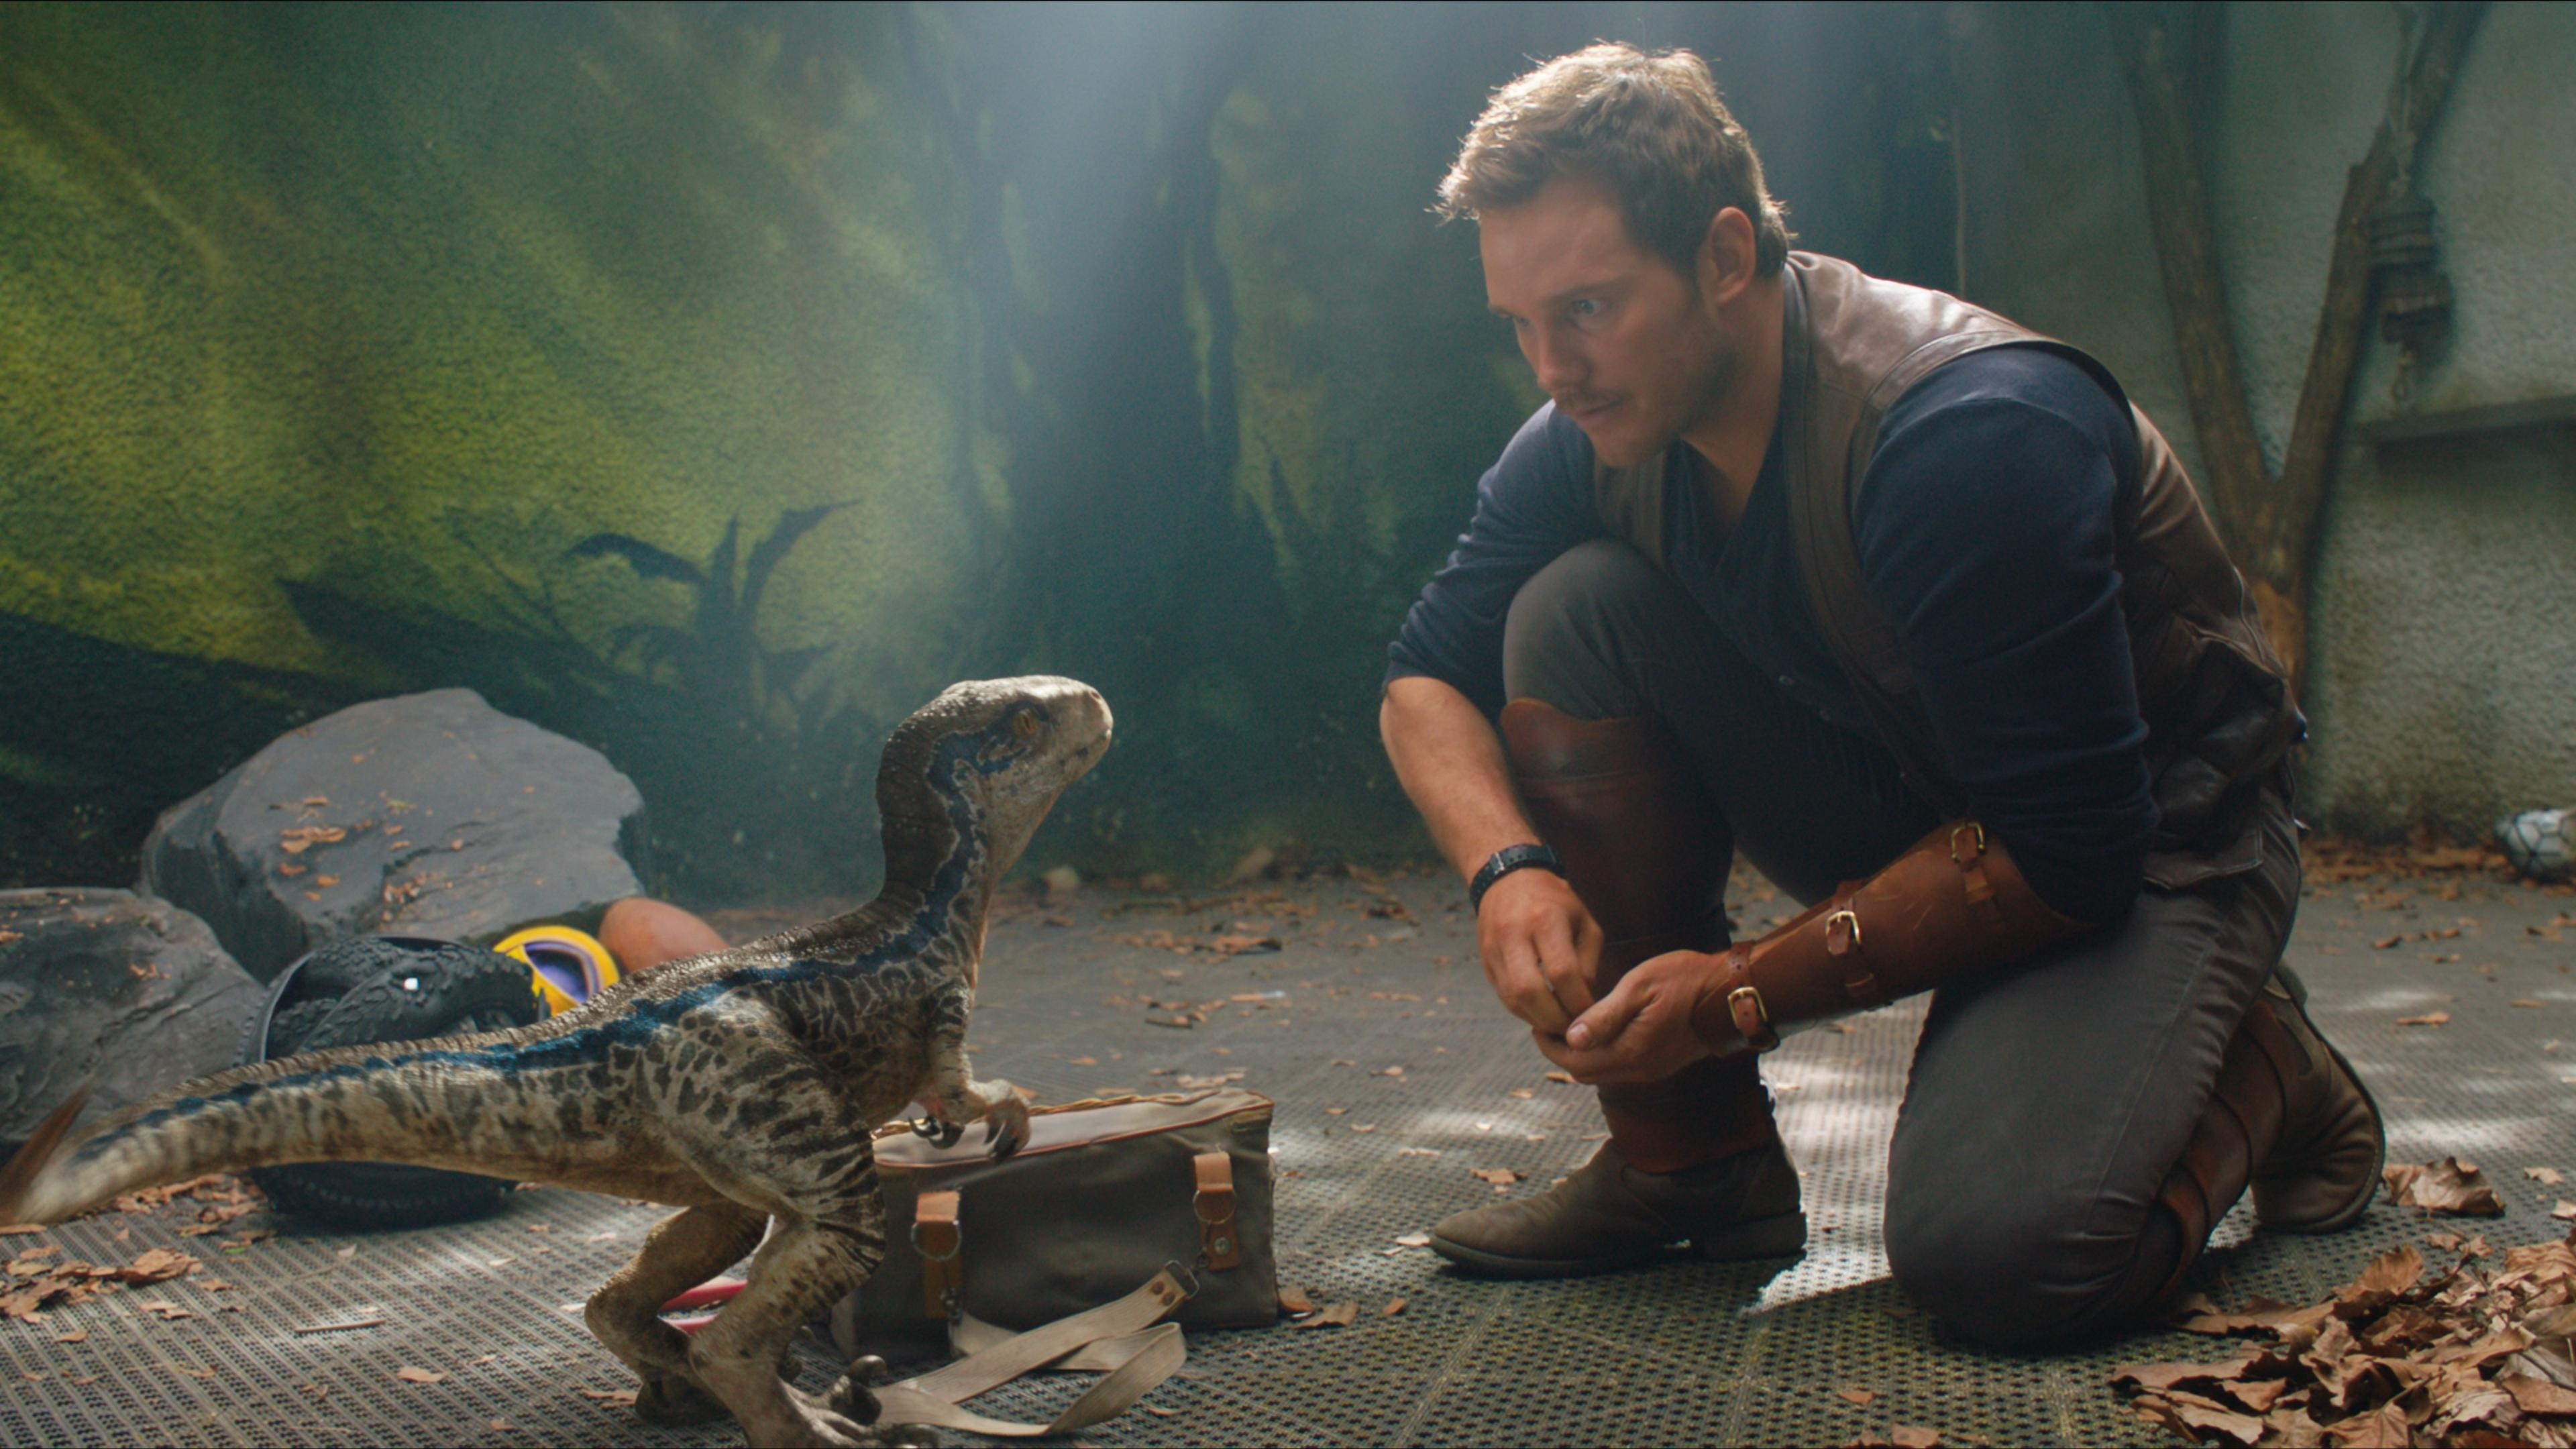 25 (tie). Jurassic World: Fallen Kingdom